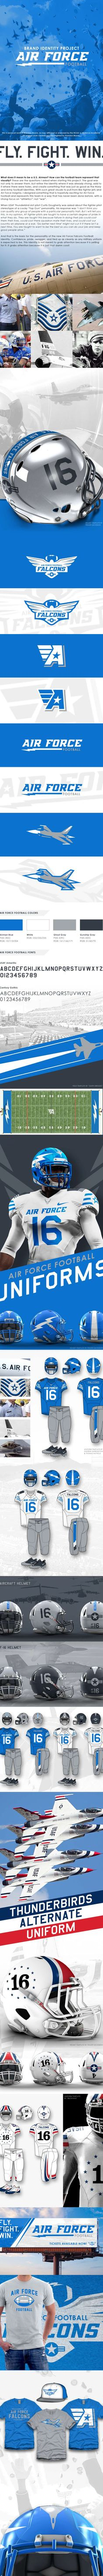 Air Force Football - Brand Identity Project on Behance